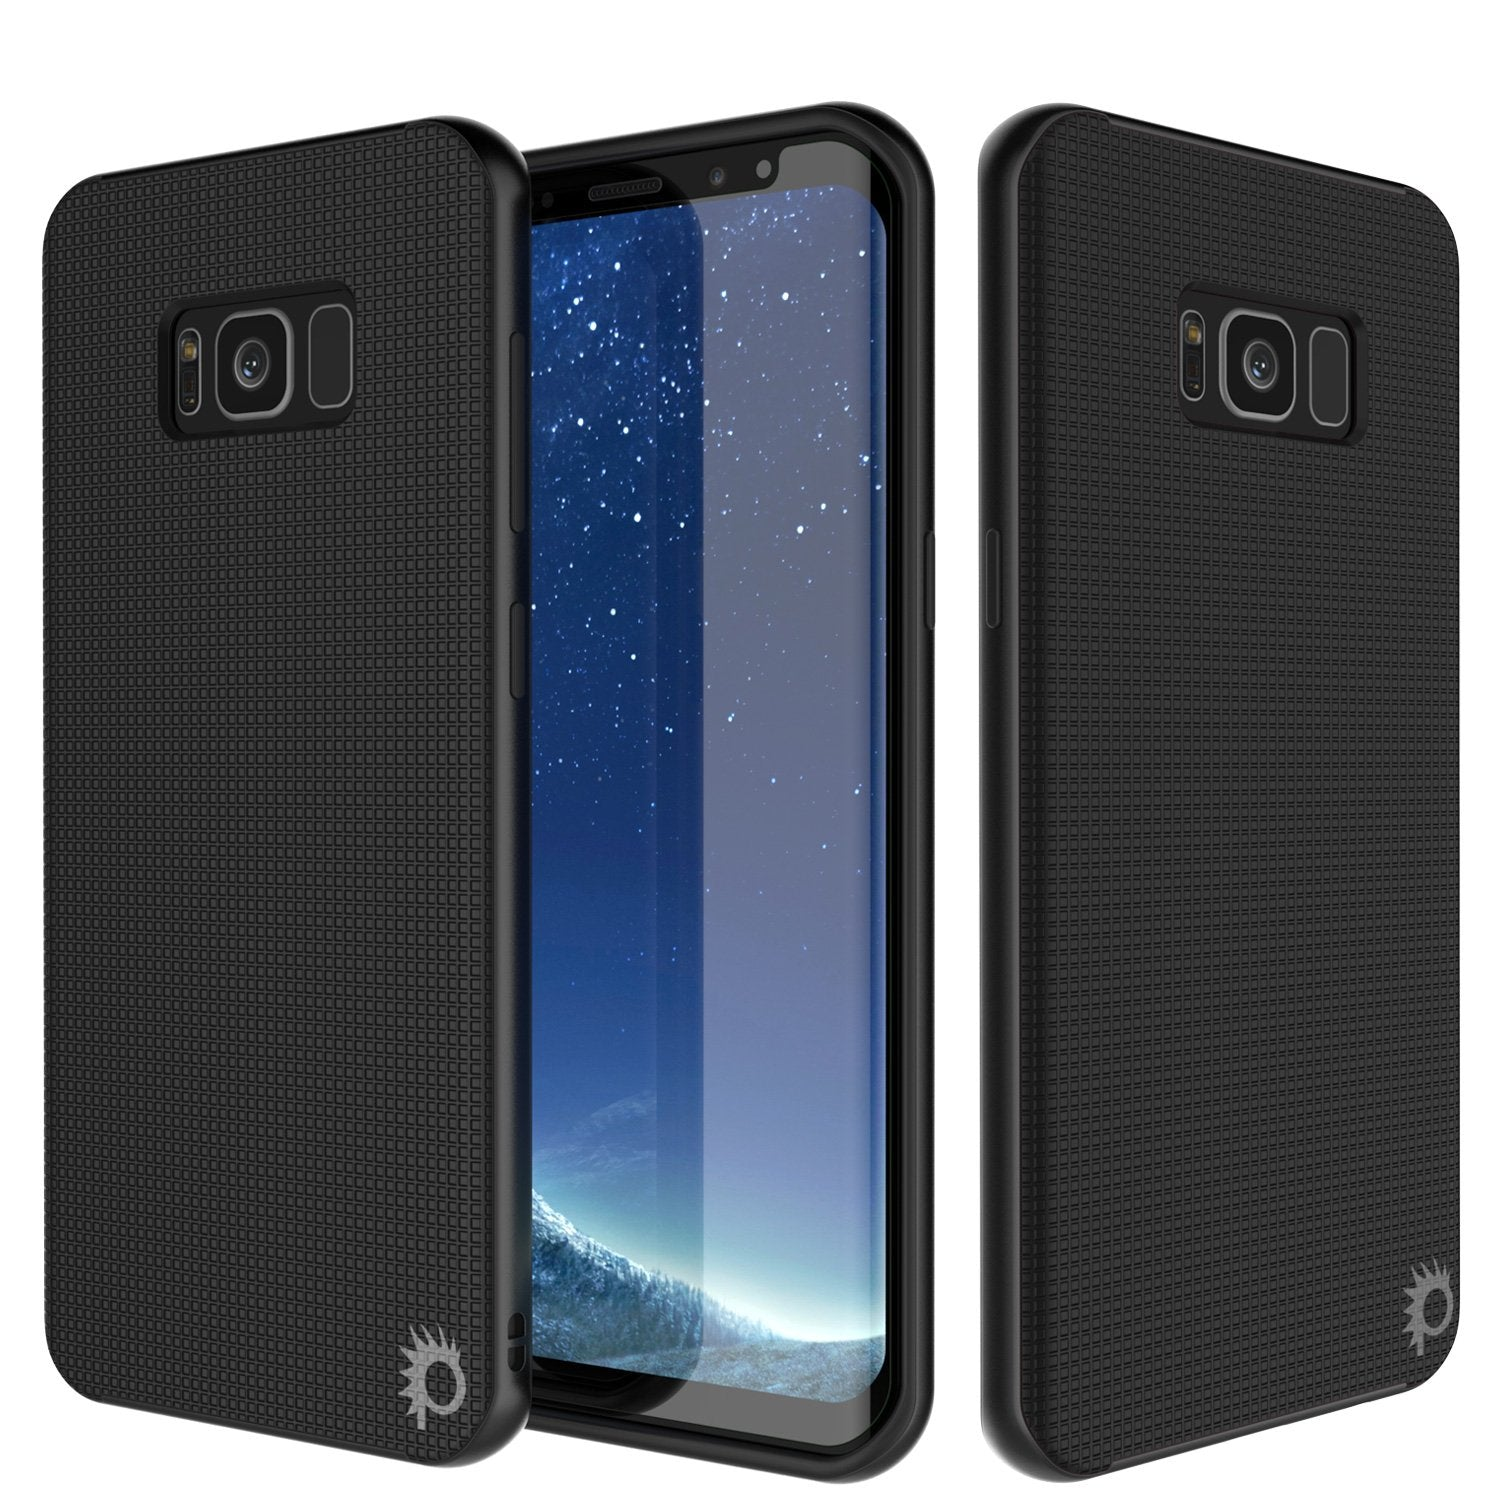 Galaxy S8 Case, PunkCase [Stealth Series] Hybrid 3-Piece Shockproof Dual Layer Cover [Non-Slip] [Soft TPU + PC Bumper] with PUNKSHIELD Screen Protector for Samsung S8 Edge [Black]